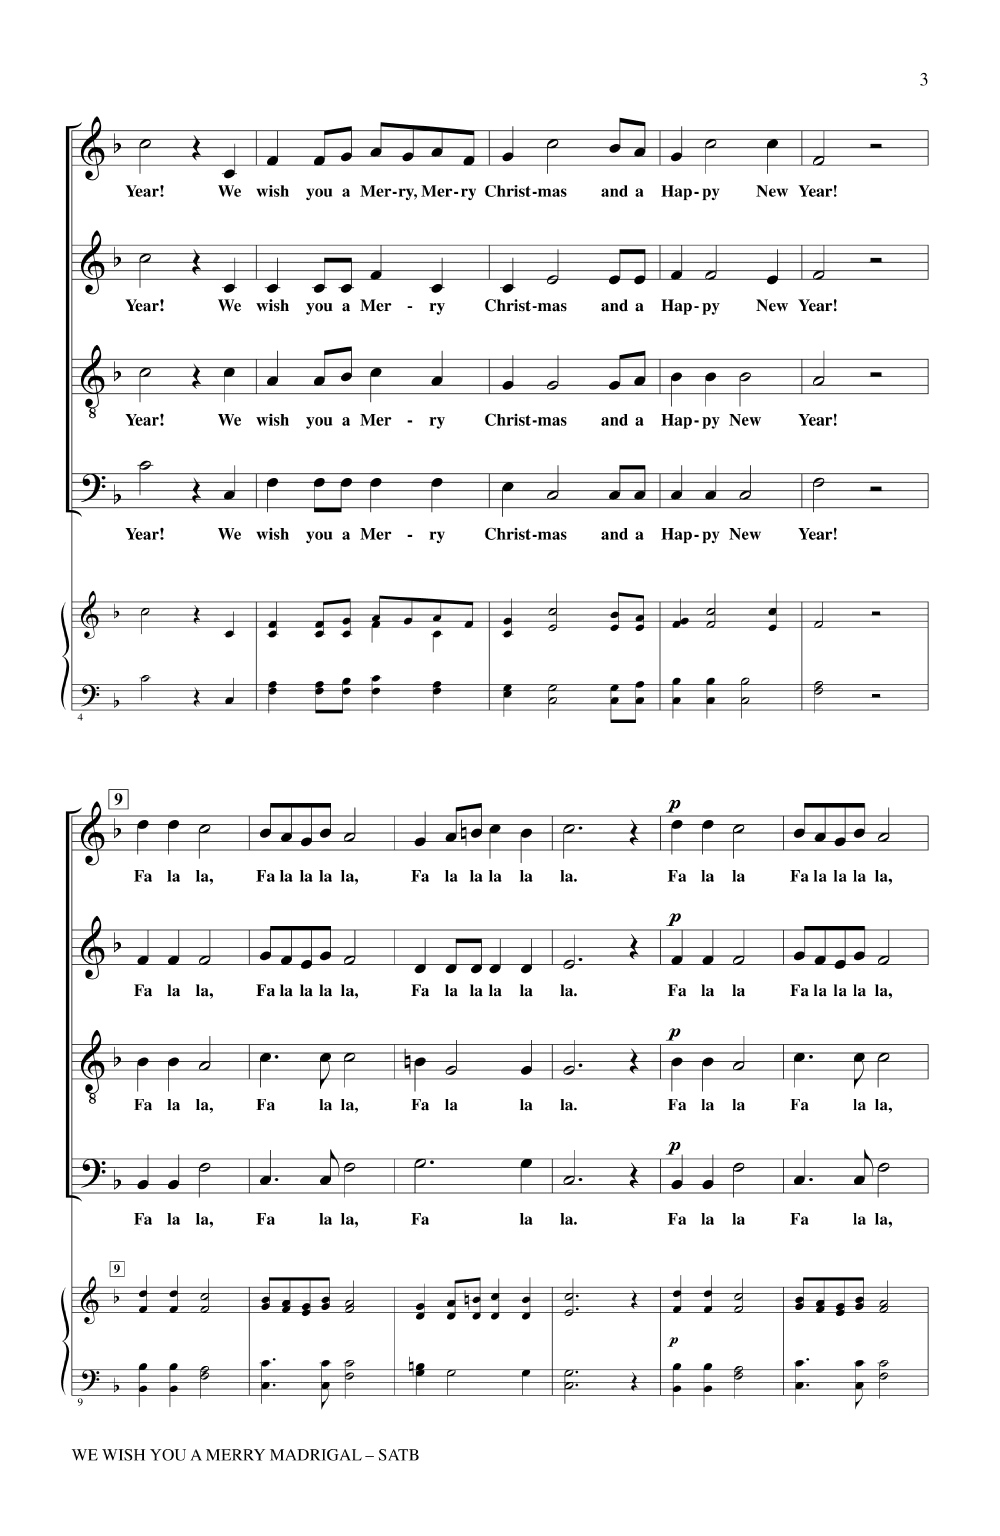 We Wish You a Merry Madrigal (SATB ) by Russ | J.W. Pepper Sheet Music